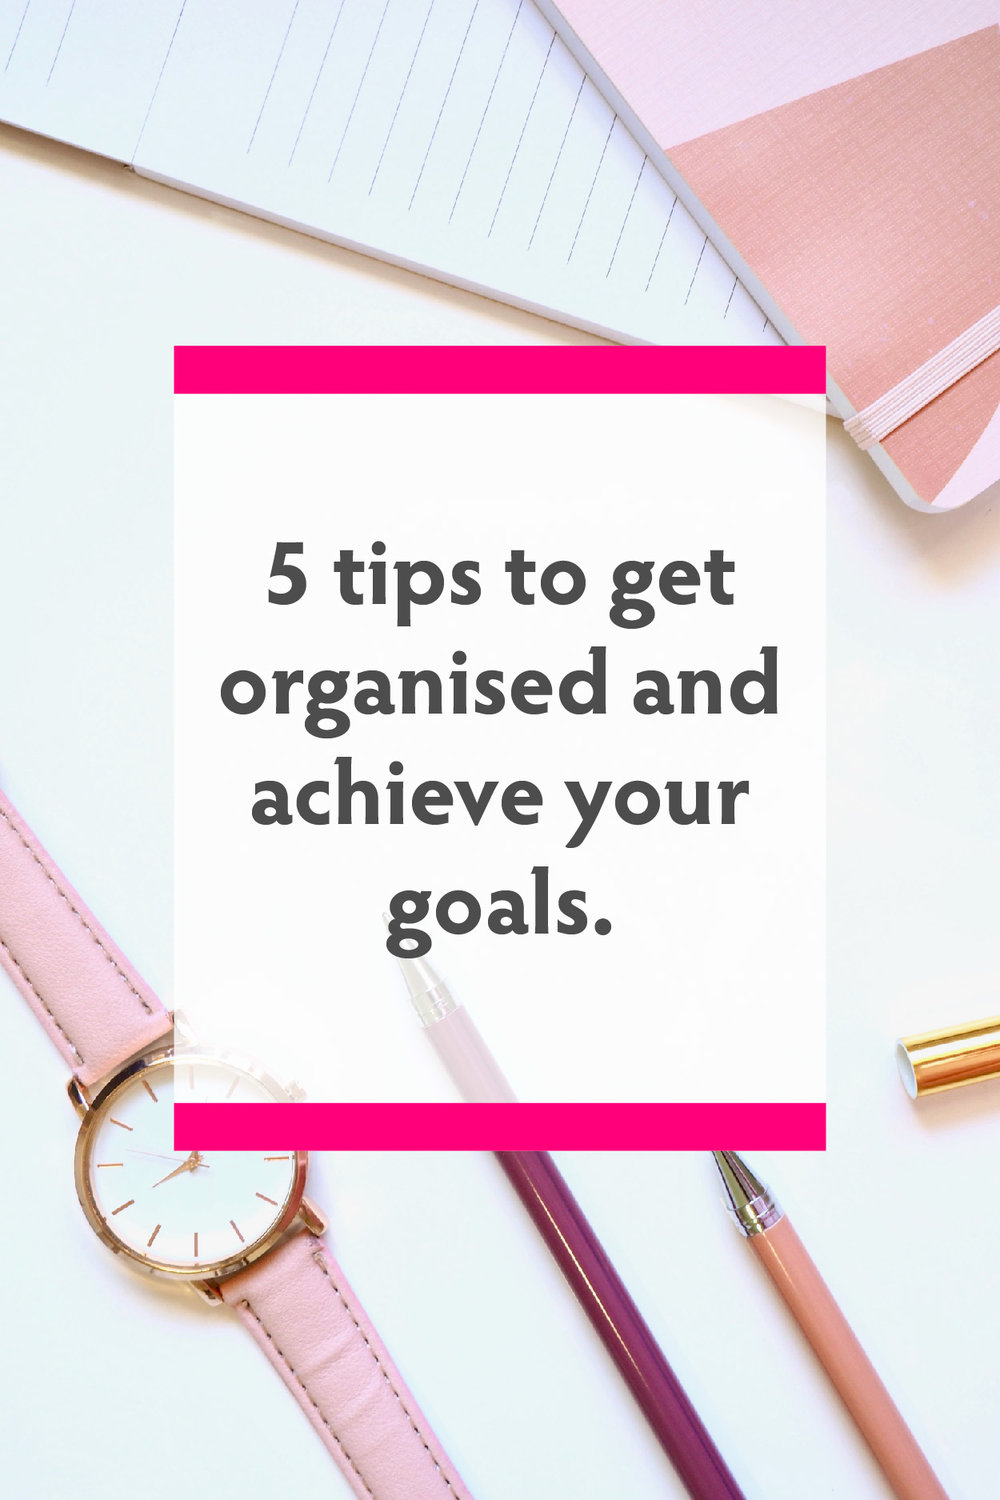 5 tips to get organised and achieve your goals.jpg